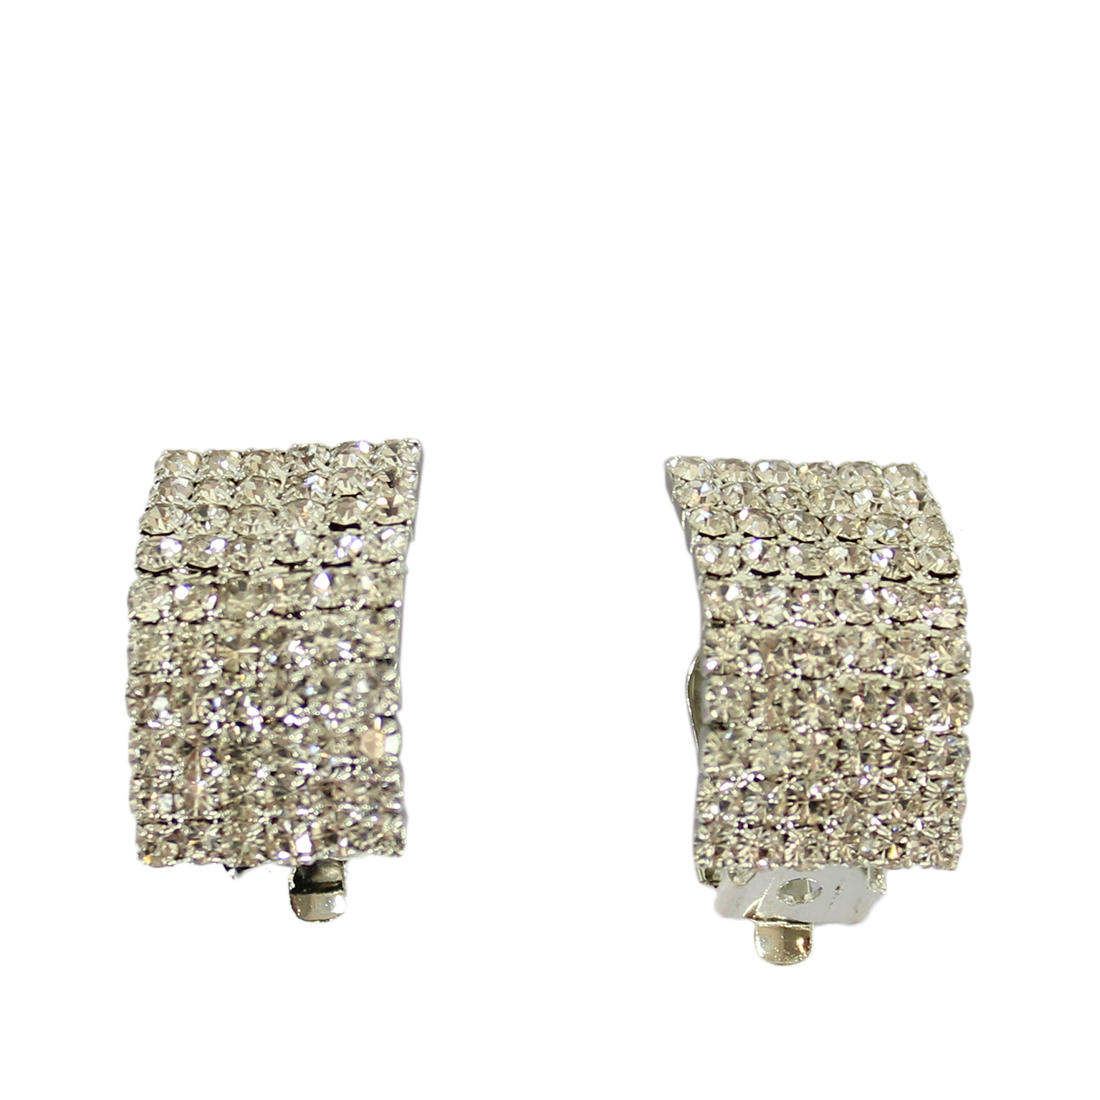 Bended diamond square style earrings